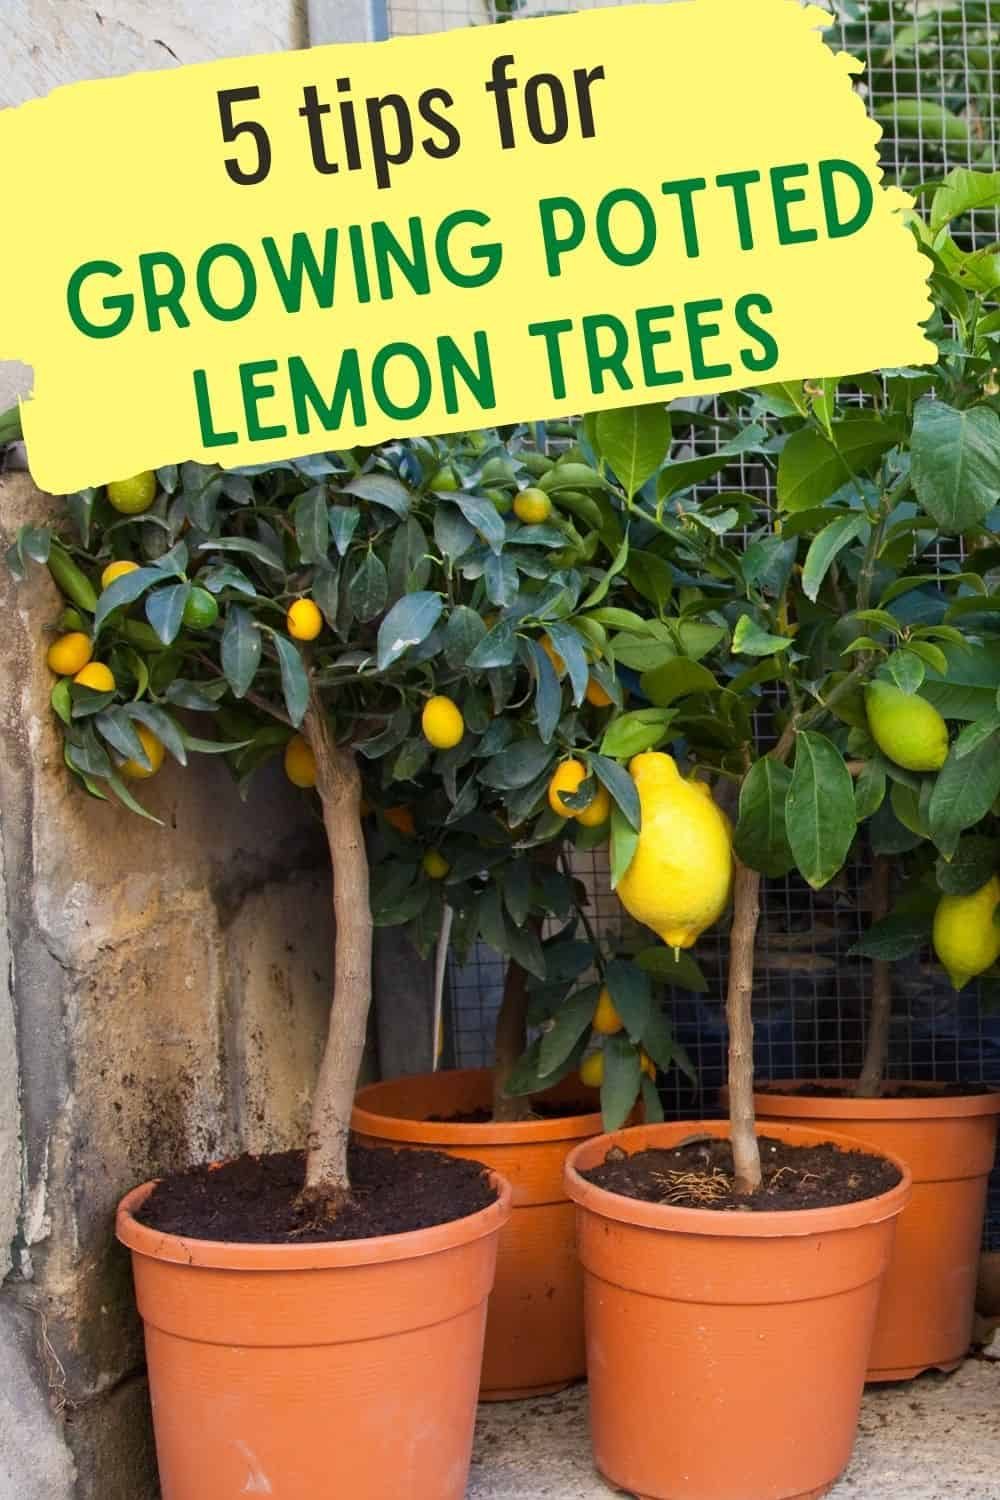 5 tips for growing potted lemon trees on Plant a Lemon Tree Day